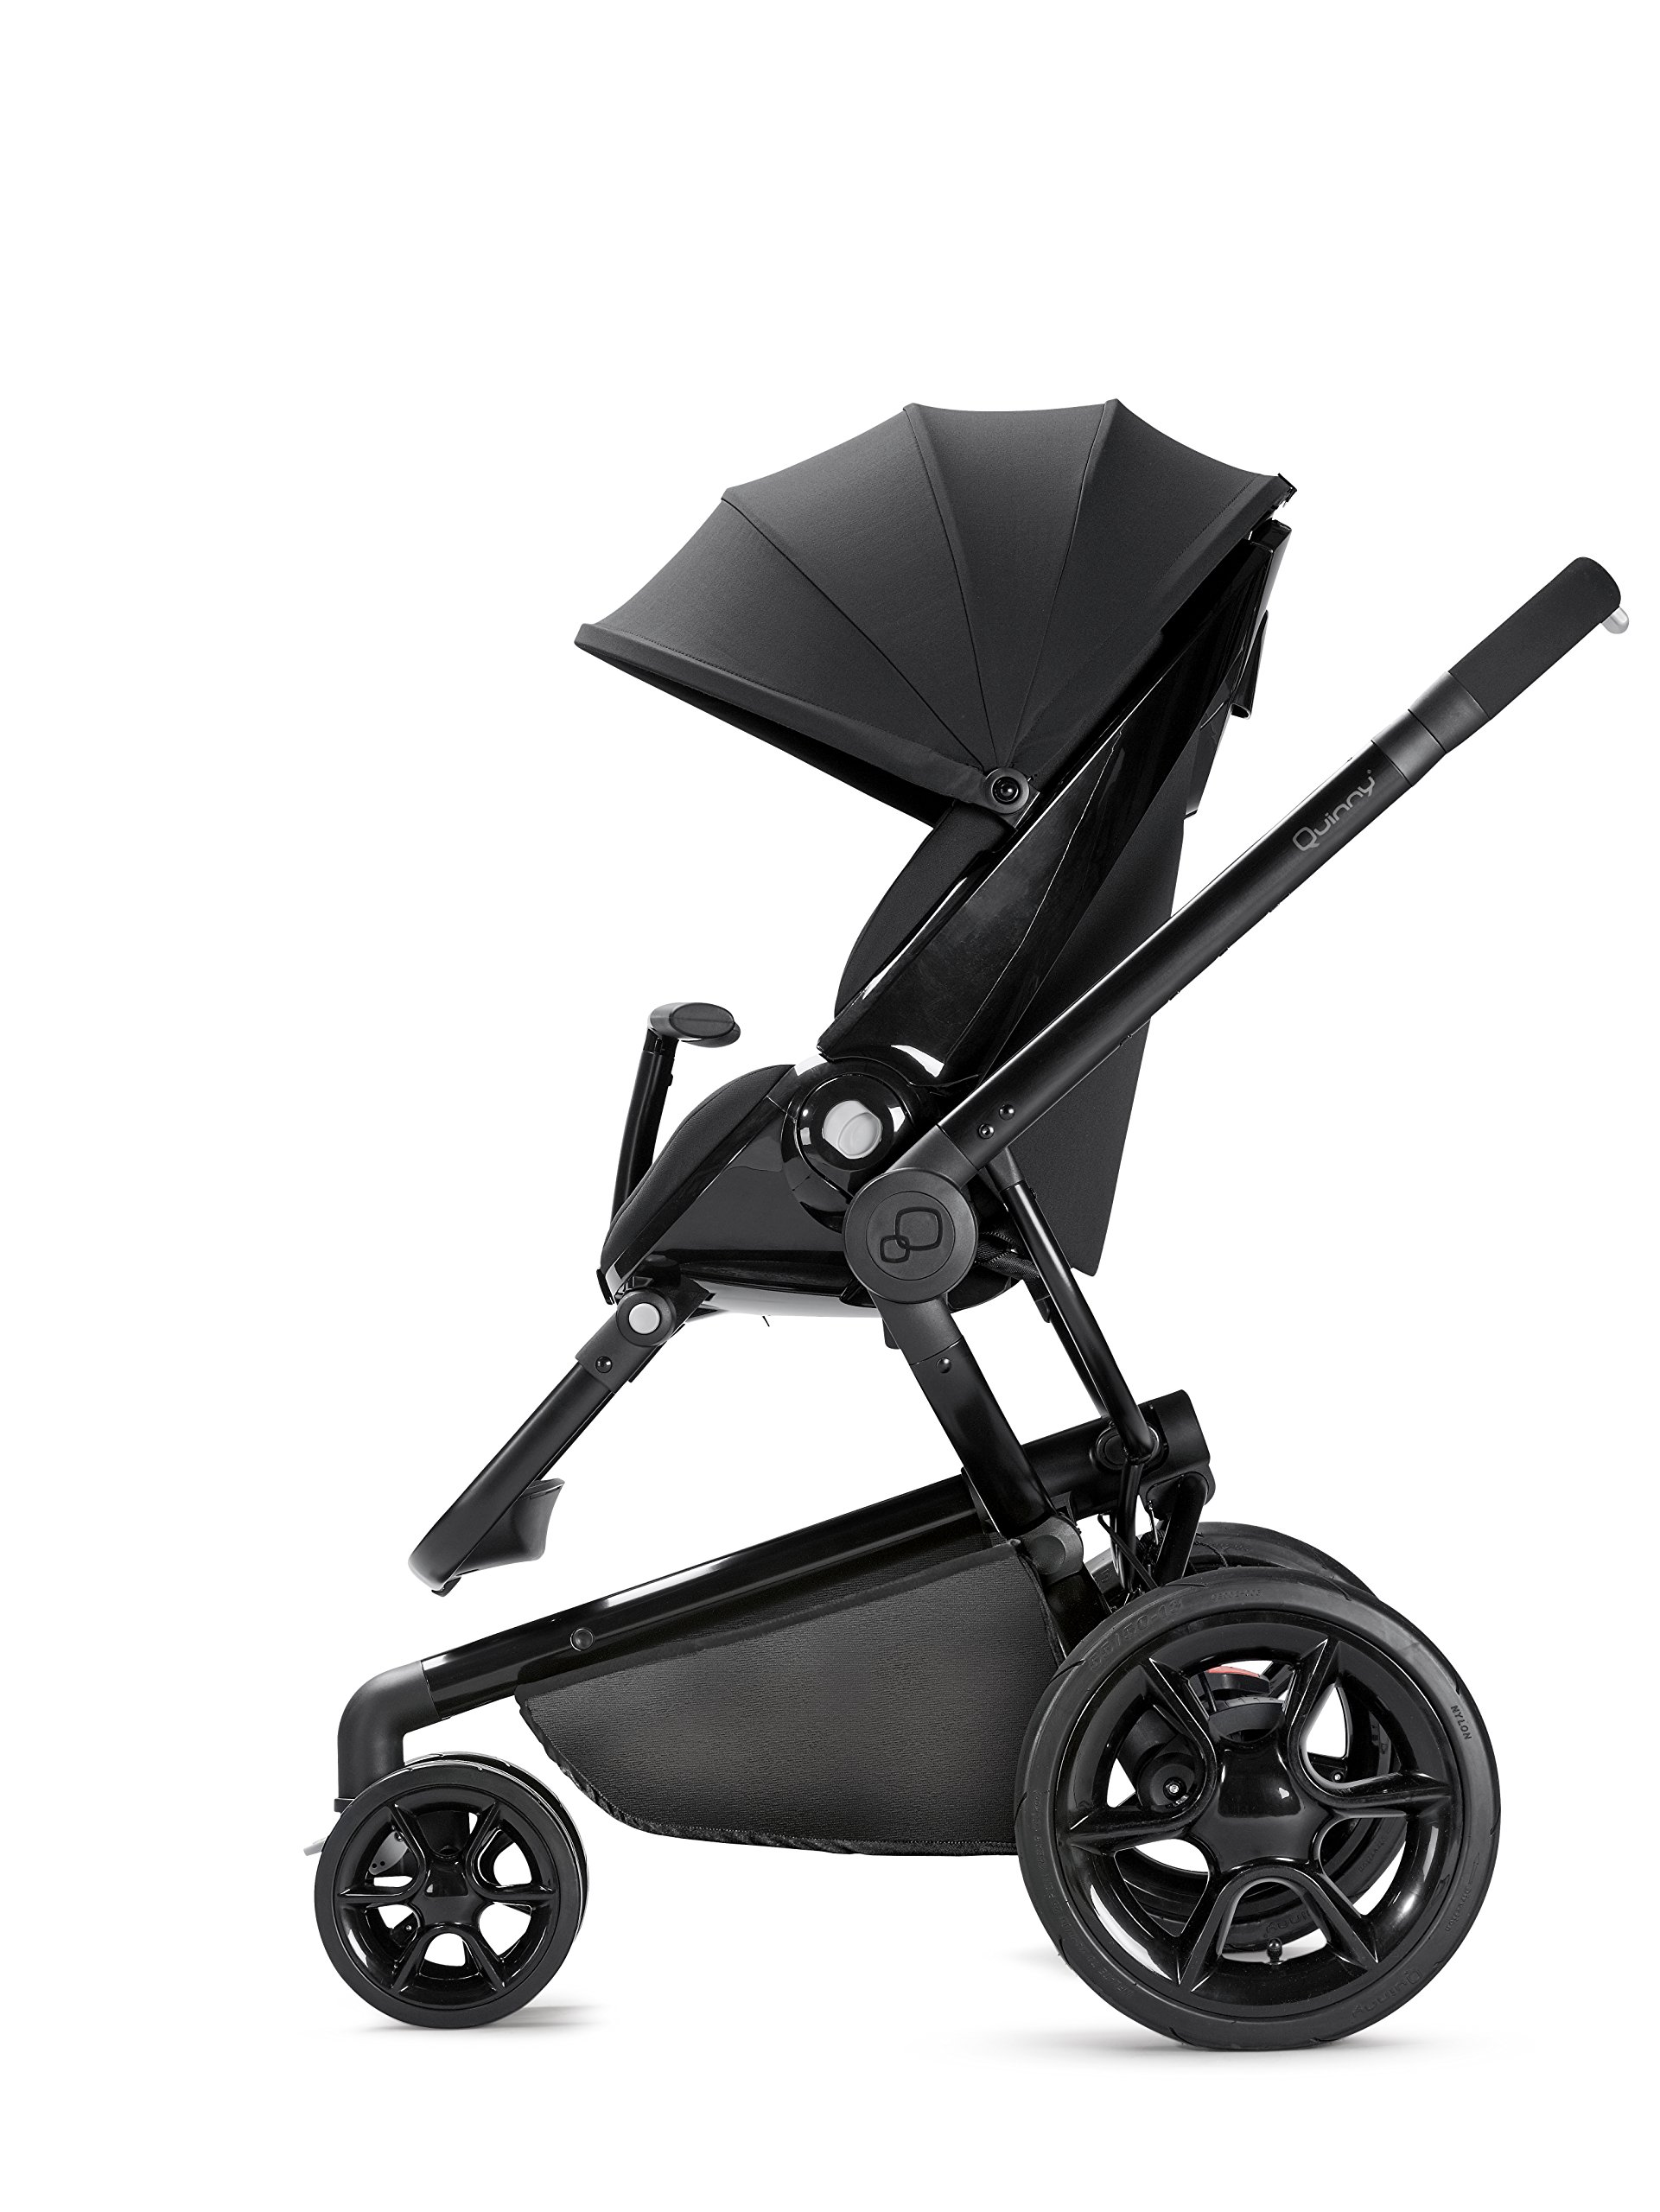 Quinny Moodd Pushchair Frame, Black Devotion Maxi-Cosi Stylish urban pushchair with cozy baby nest - suitable from birth to 15 kg (approx. 3.5 years) Foam filled comfort tyres and lockable front swivel wheels for a smooth ride Reversible seat unit with 3 recline position (including lie-flat options for newborns) 7